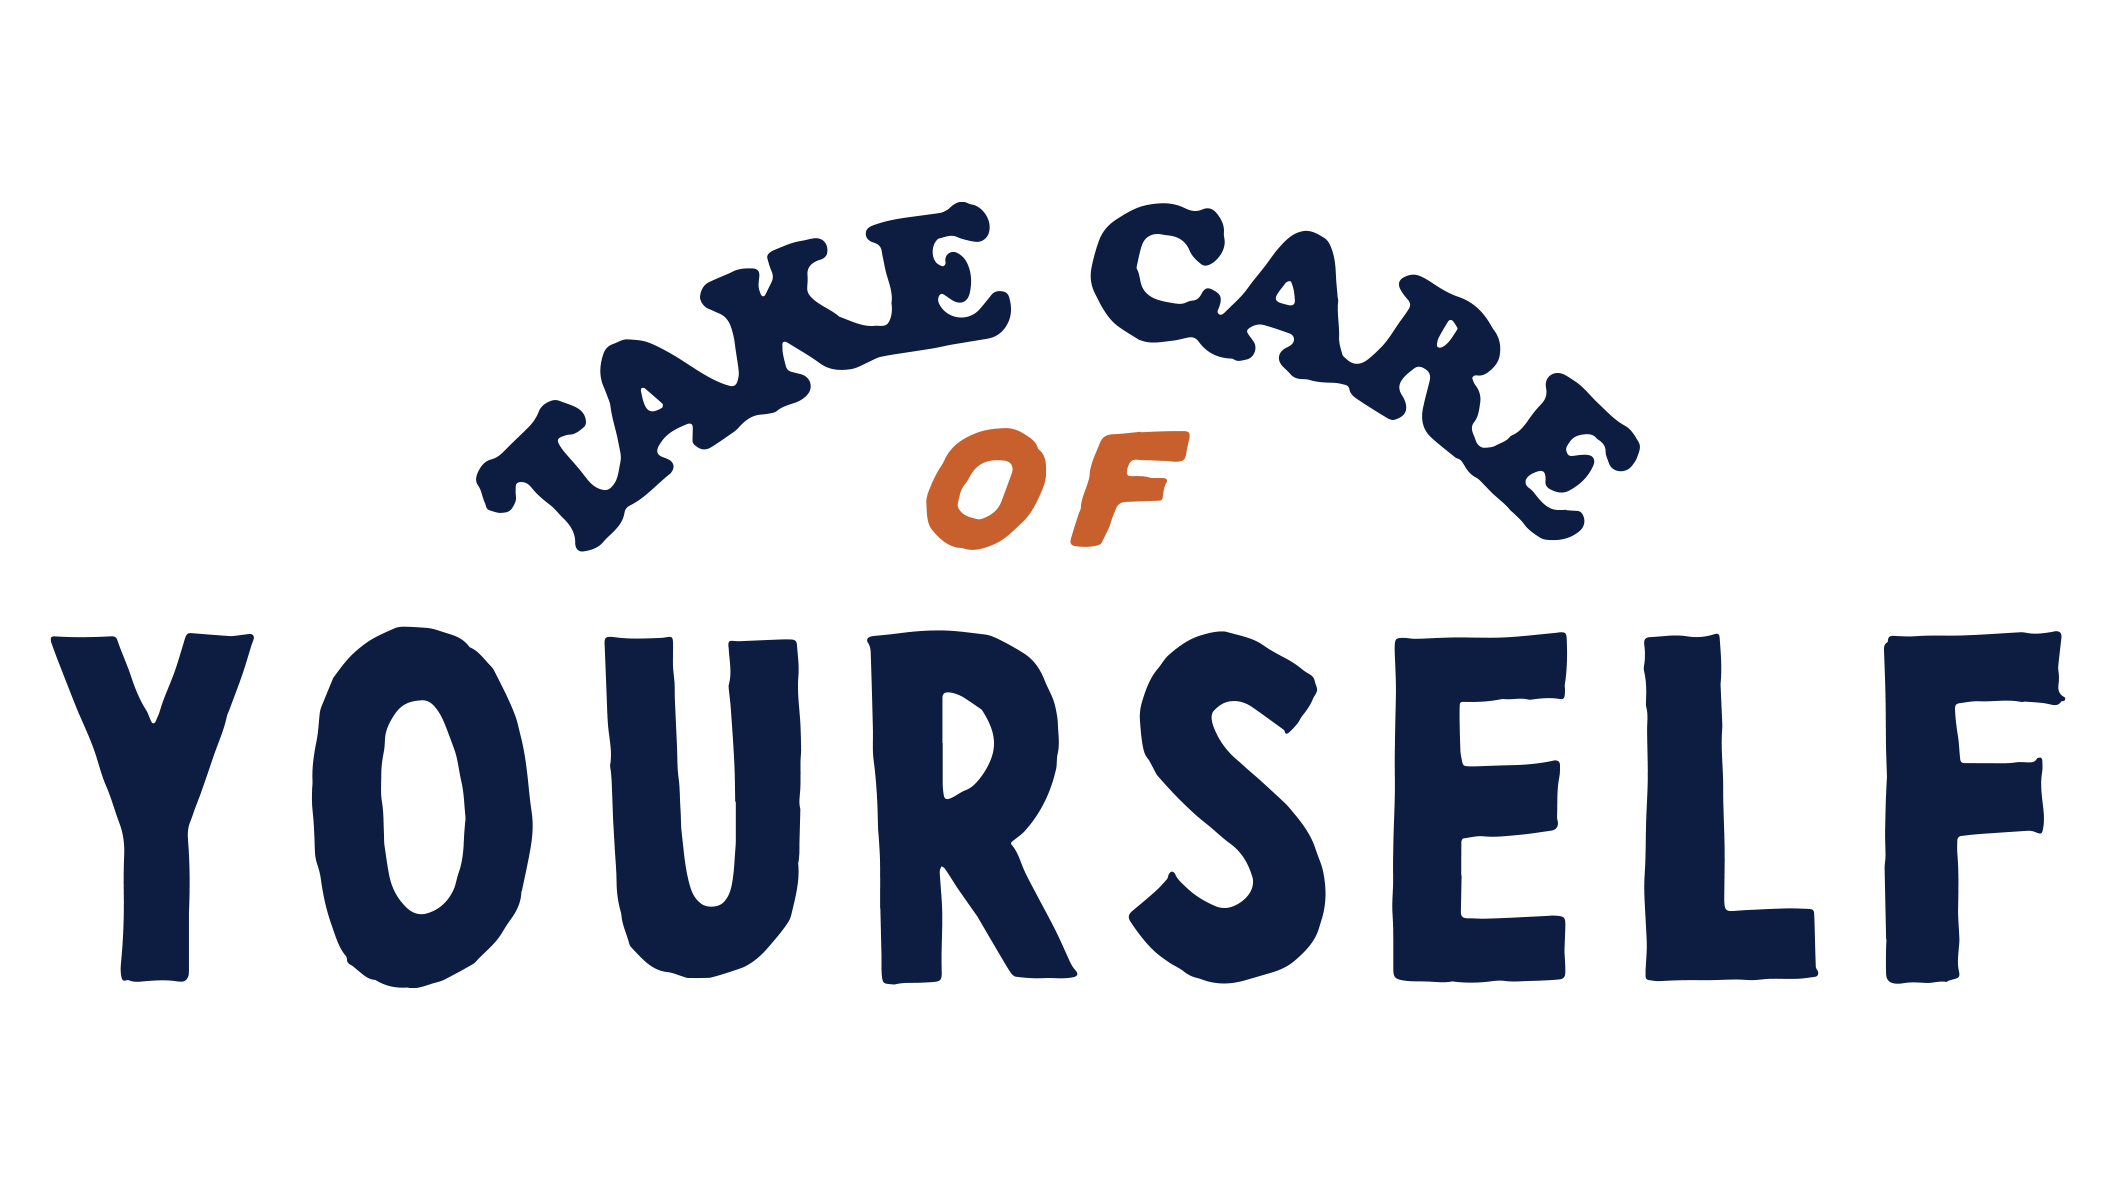 The words Take Care of Yourself